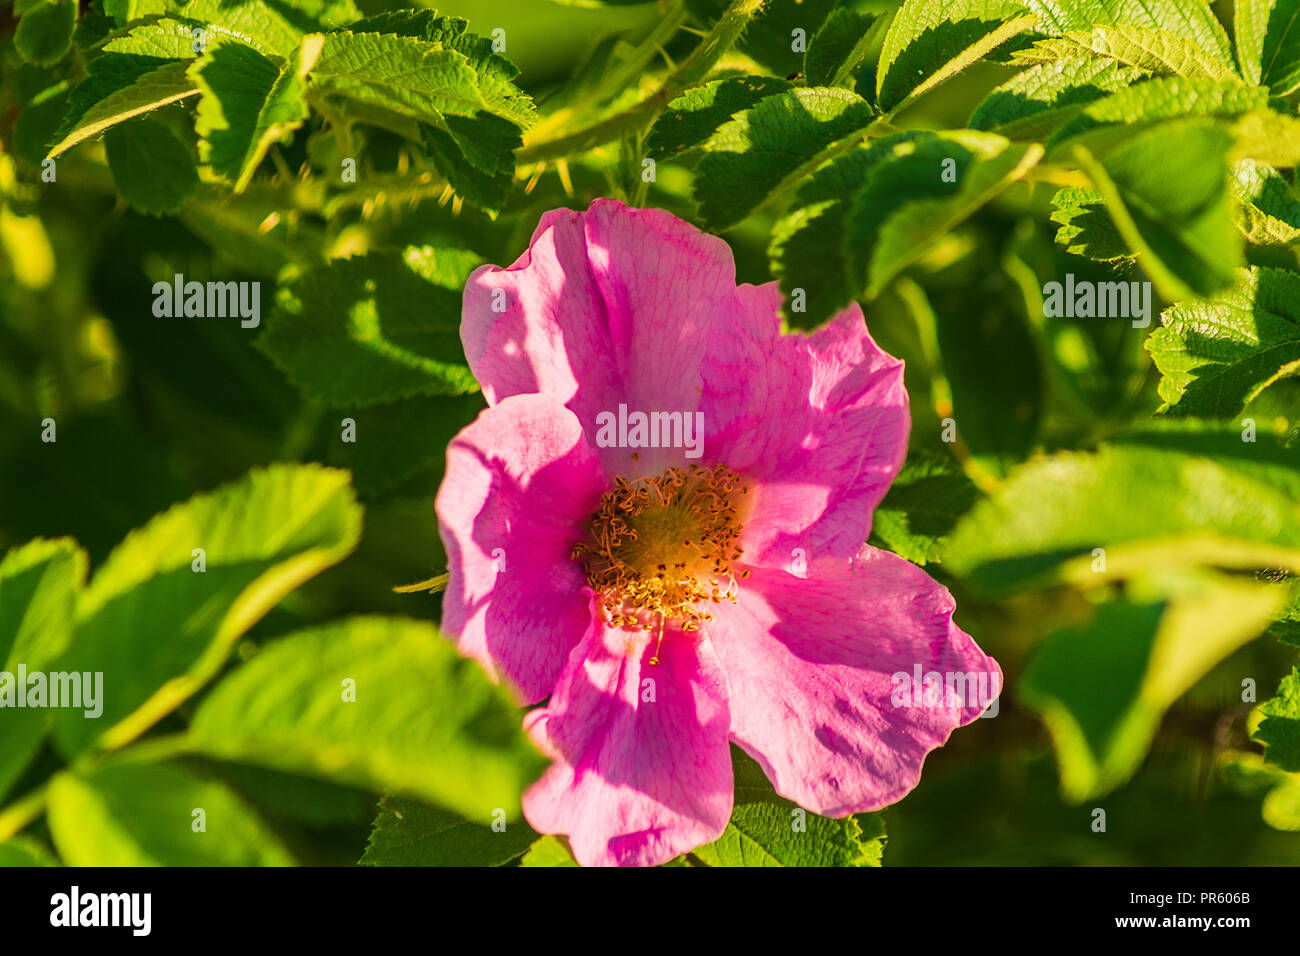 Dog Rose Pink Flower In The Bush In The Garden Spring Stock Photo